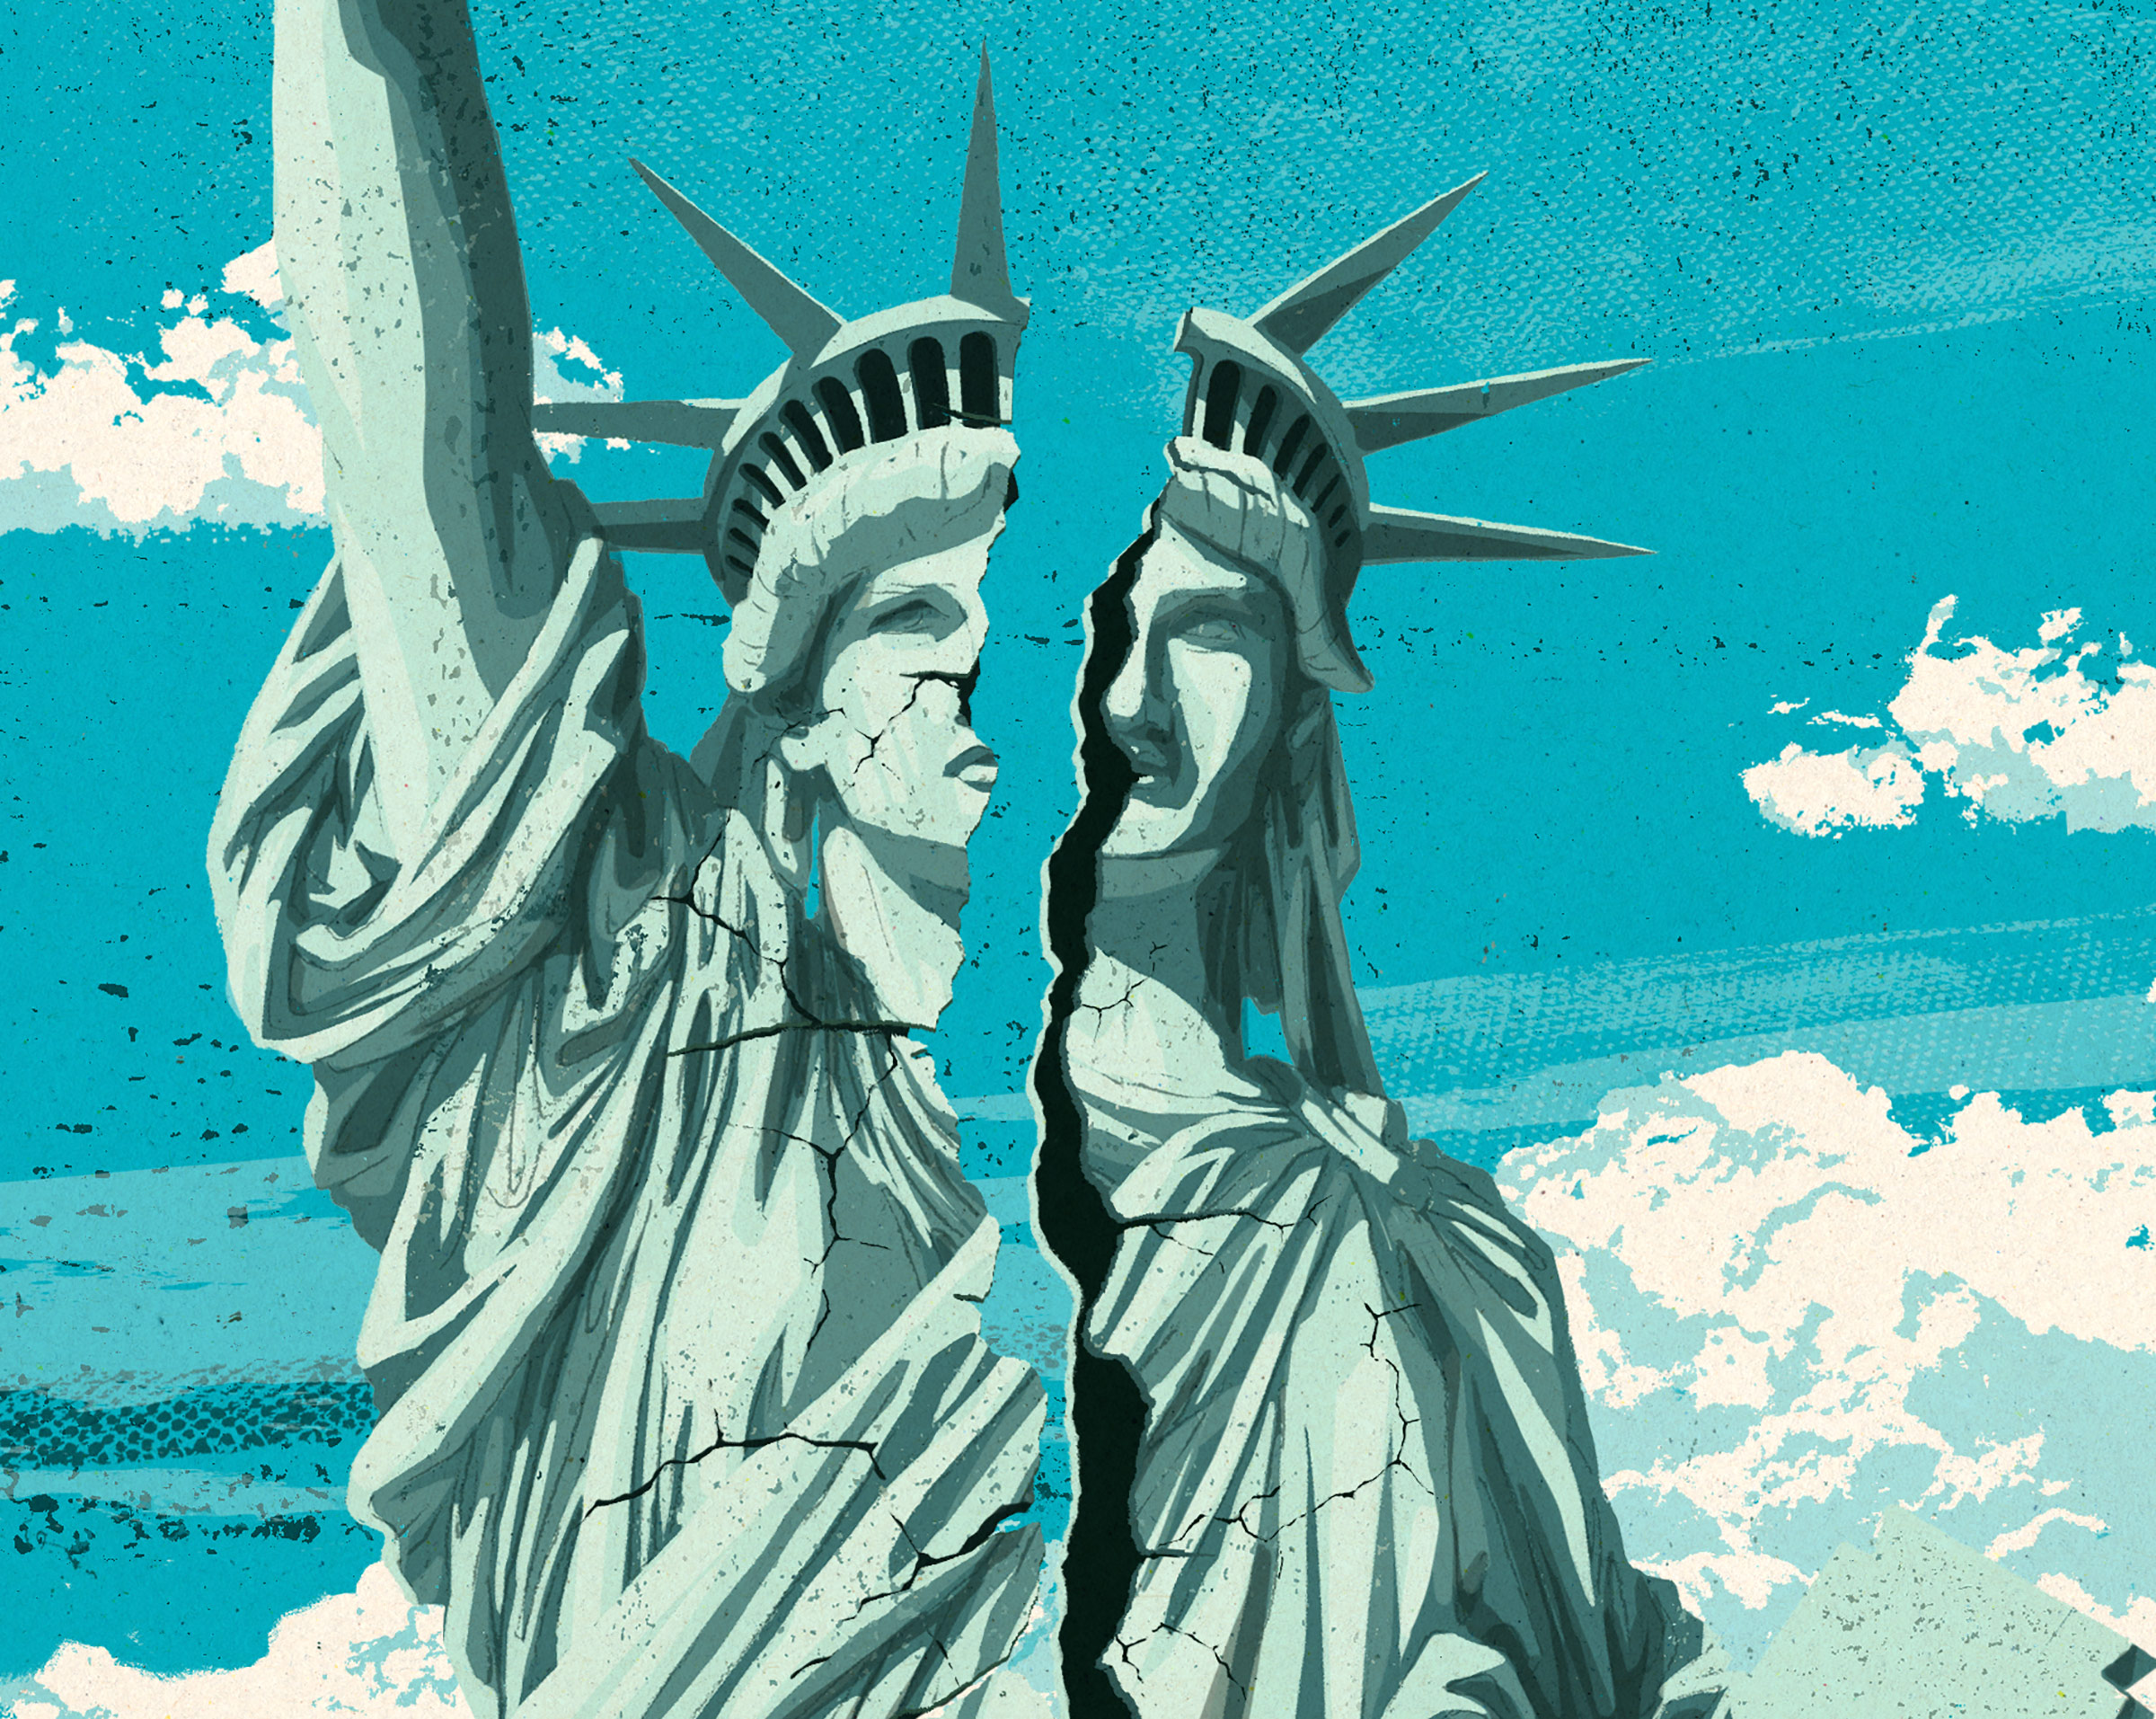 The Complicated Truth About What U.S. Citizenship Means Today